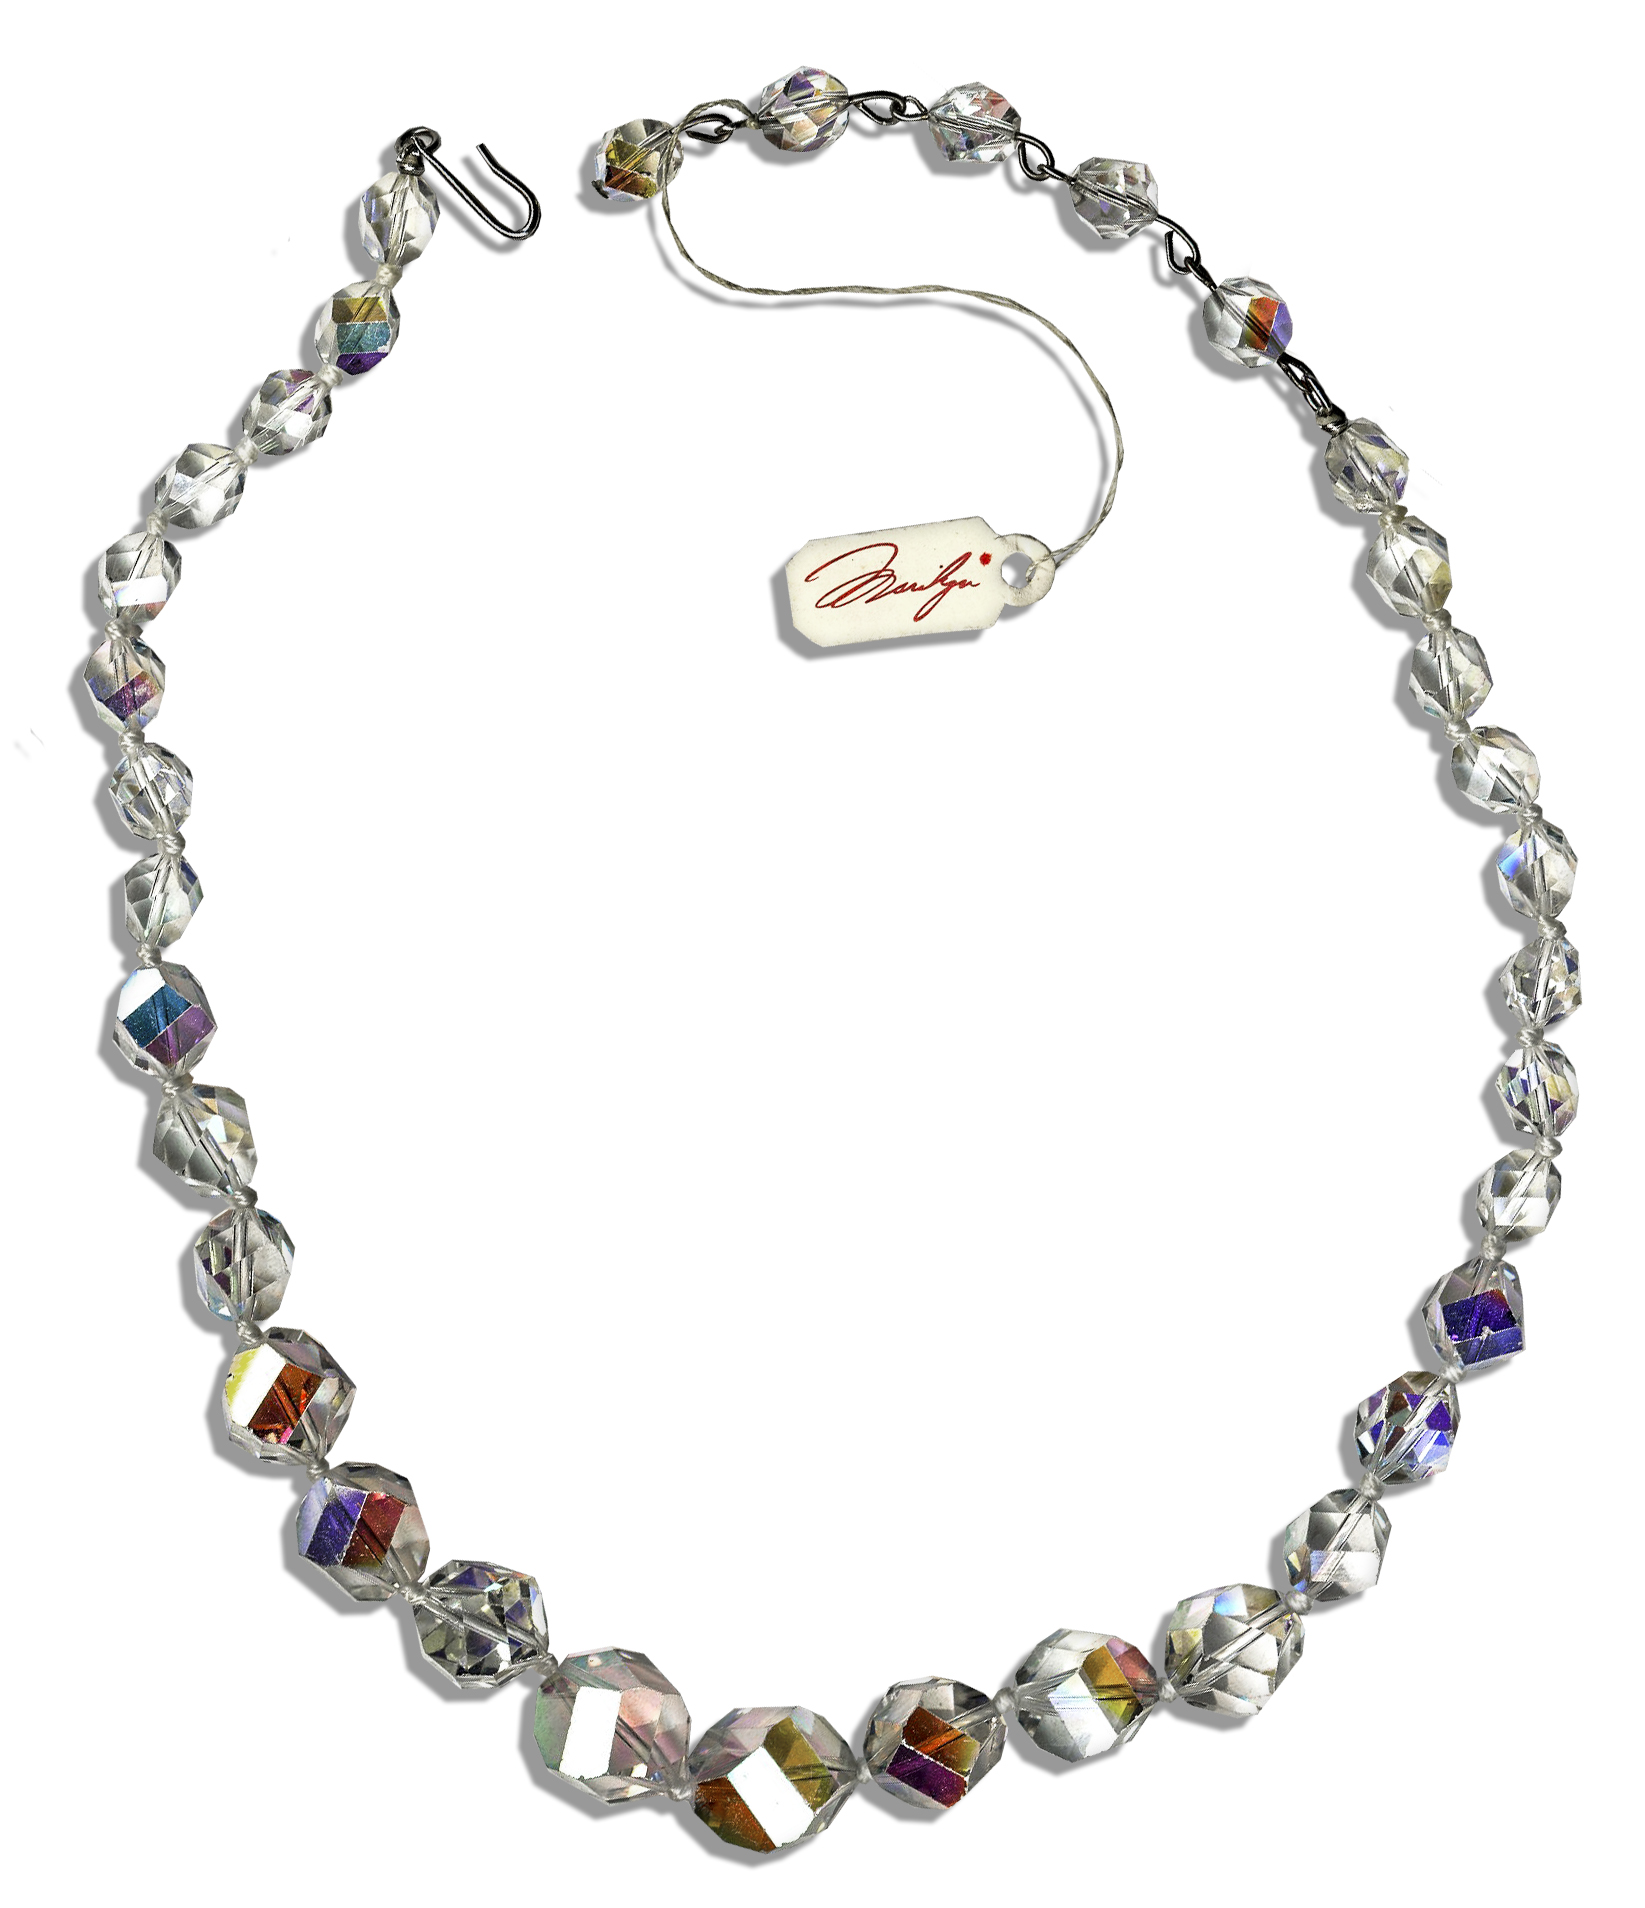 Marilyn Monroe Jewelry Auction Marilyn Monroe Personally Owned Crystal Necklace